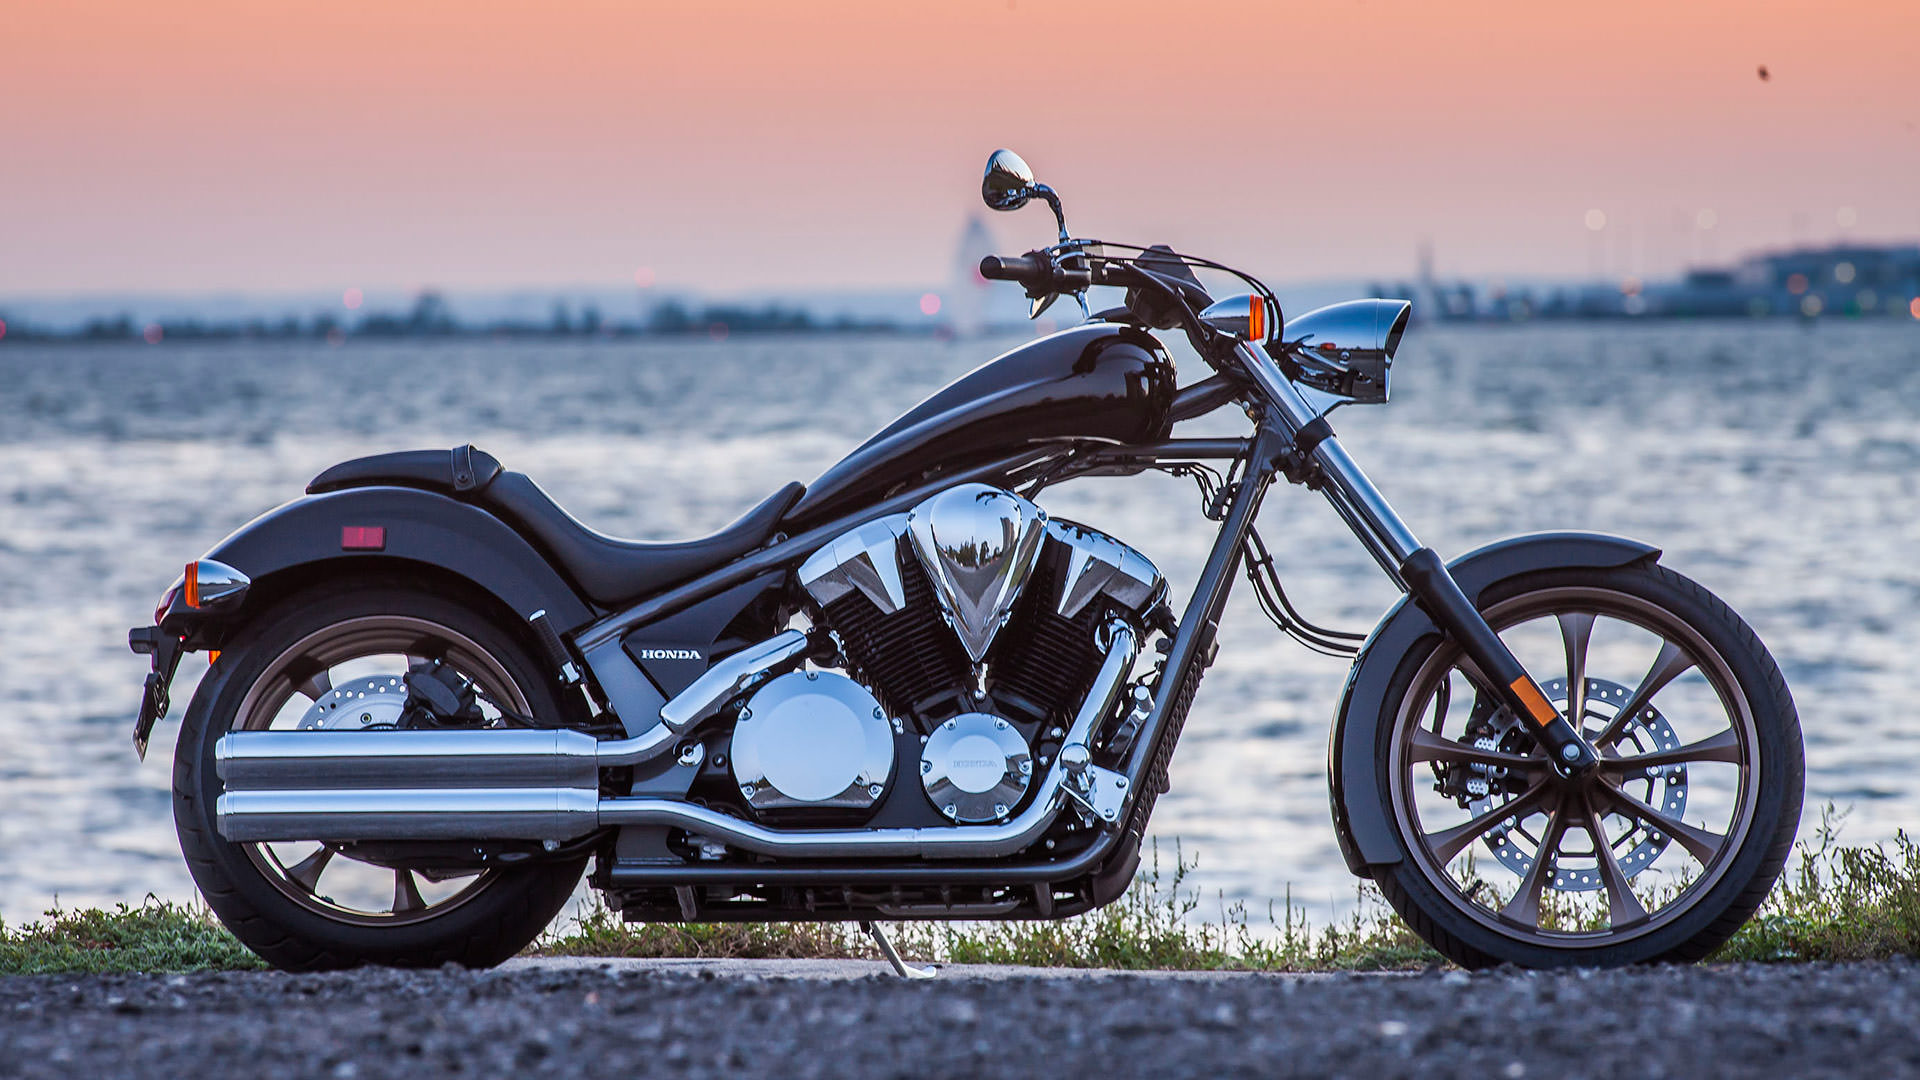 hight resolution of 2017 honda fury 1300 review specs features changes development story chopper cruiser motorcycle